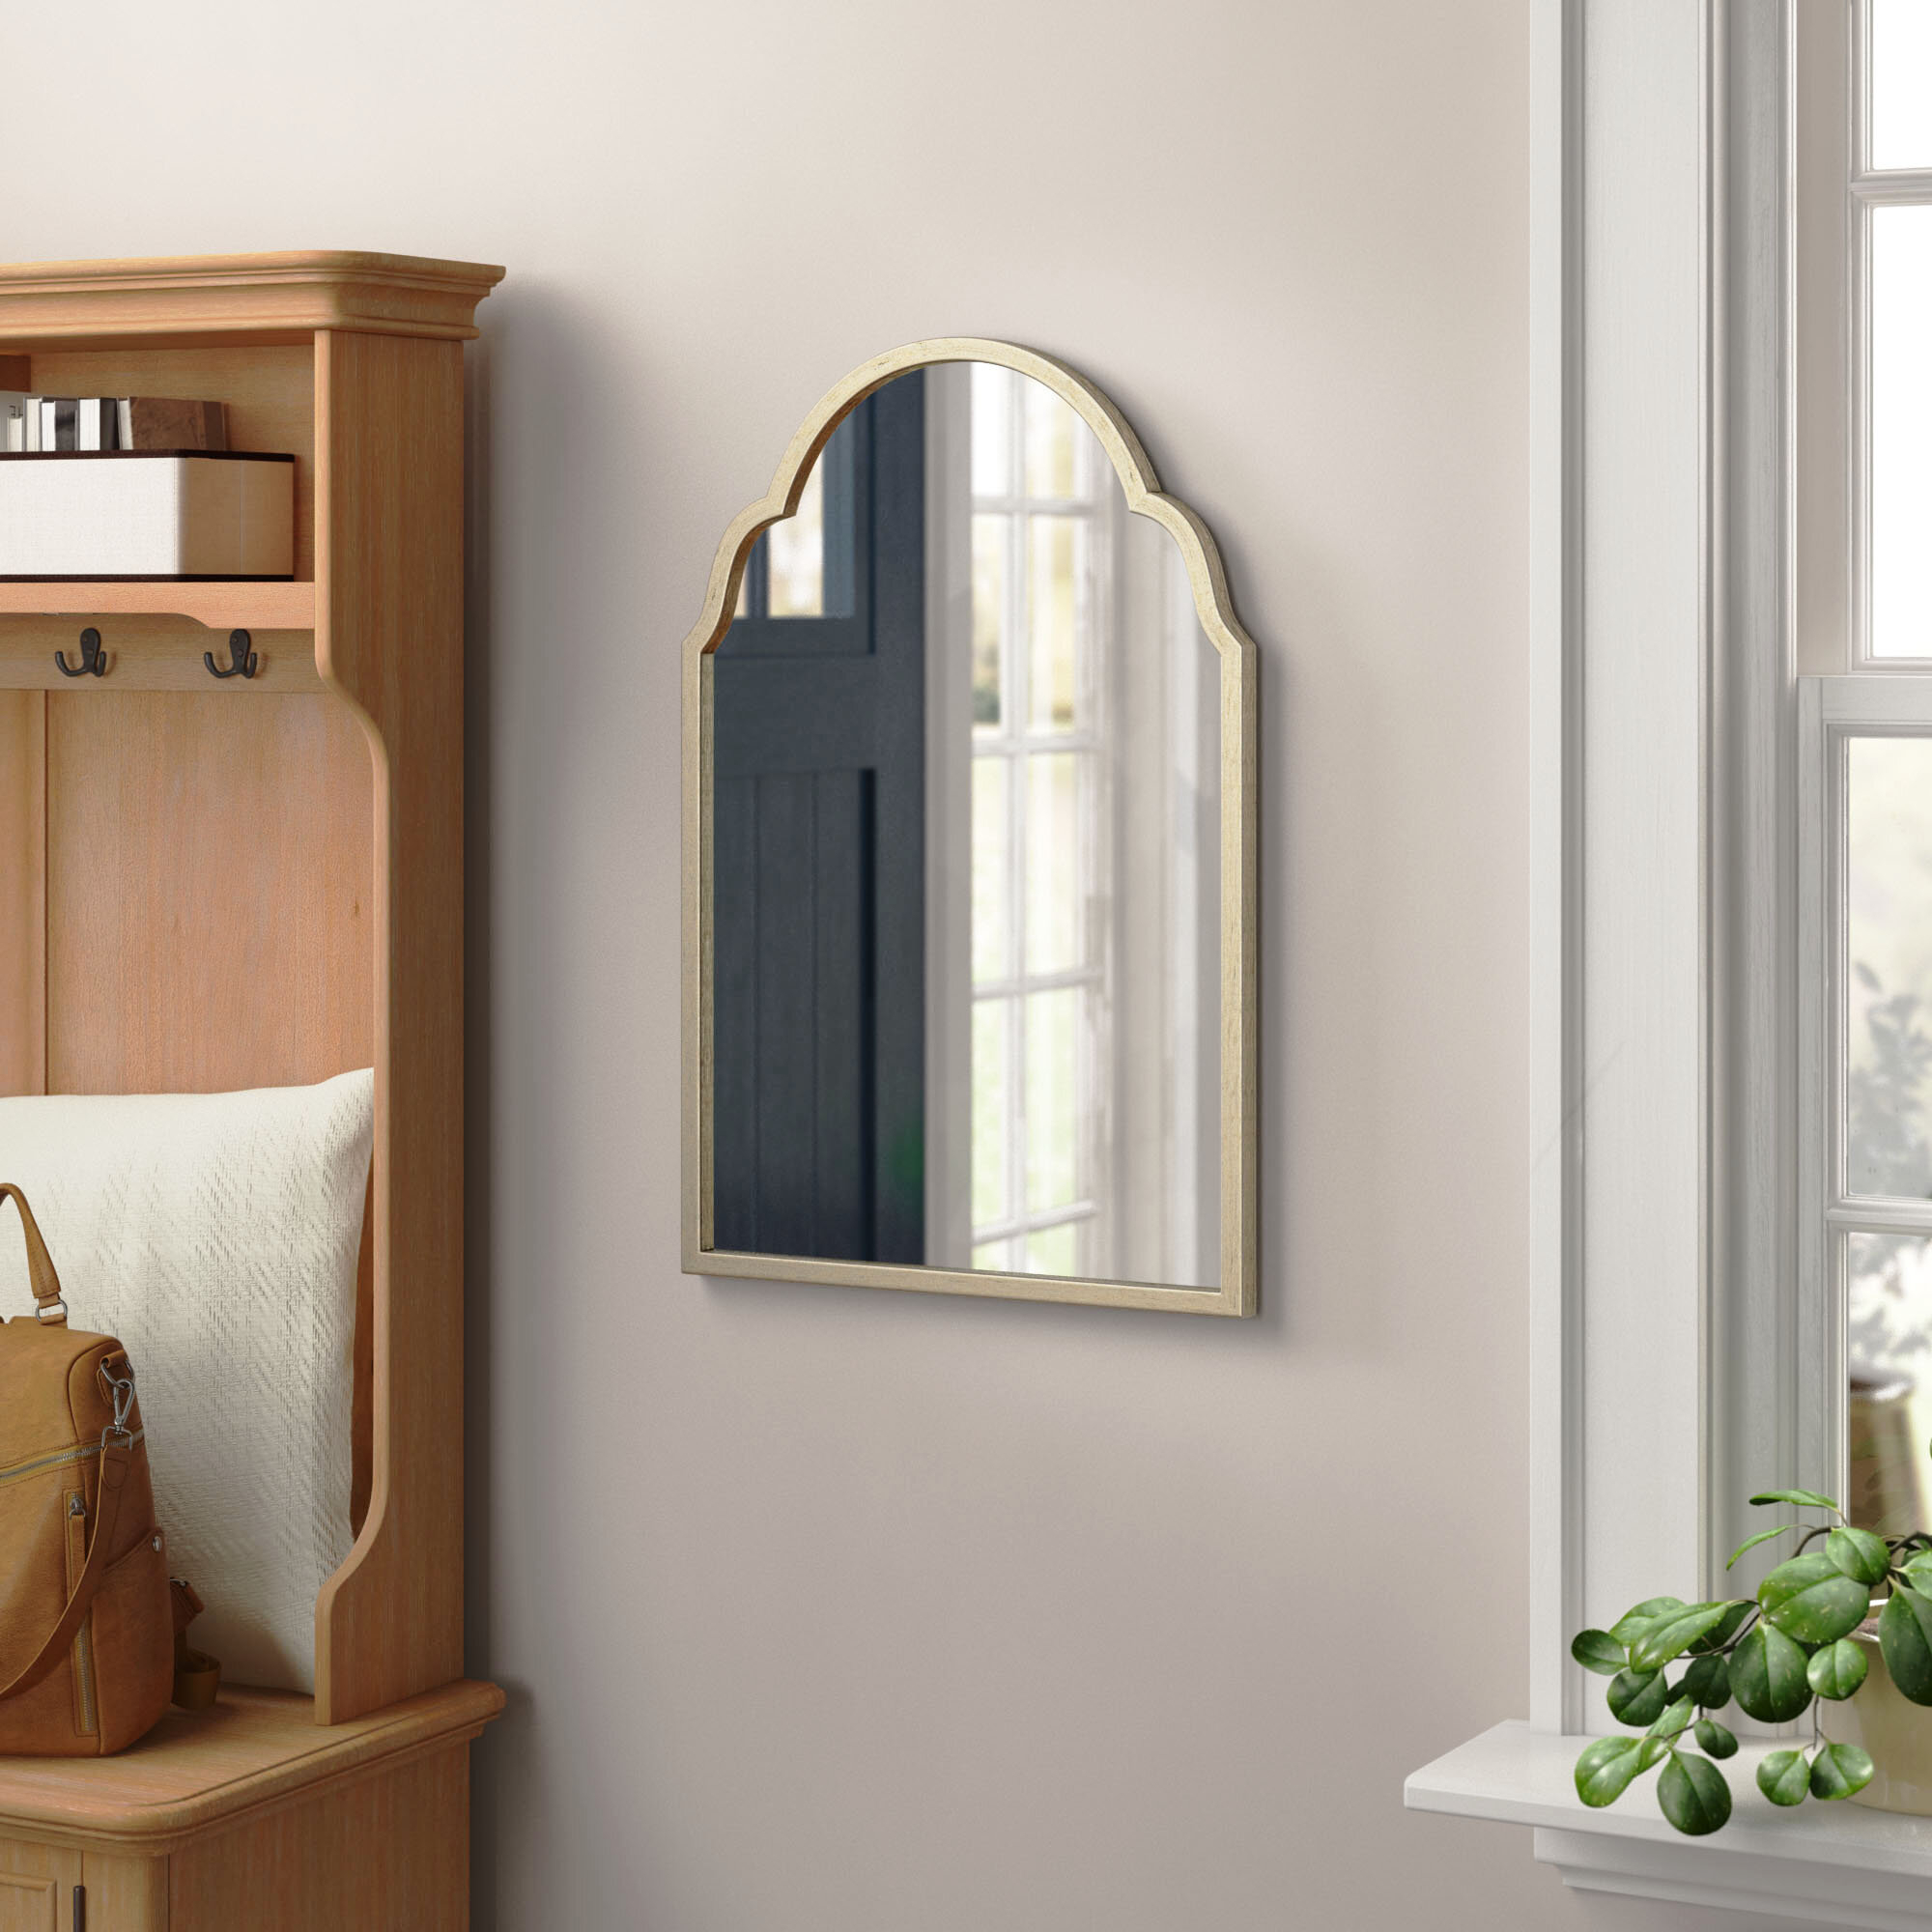 Narrow Accent Mirror | Wayfair Pertaining To Moseley Accent Mirrors (View 3 of 20)